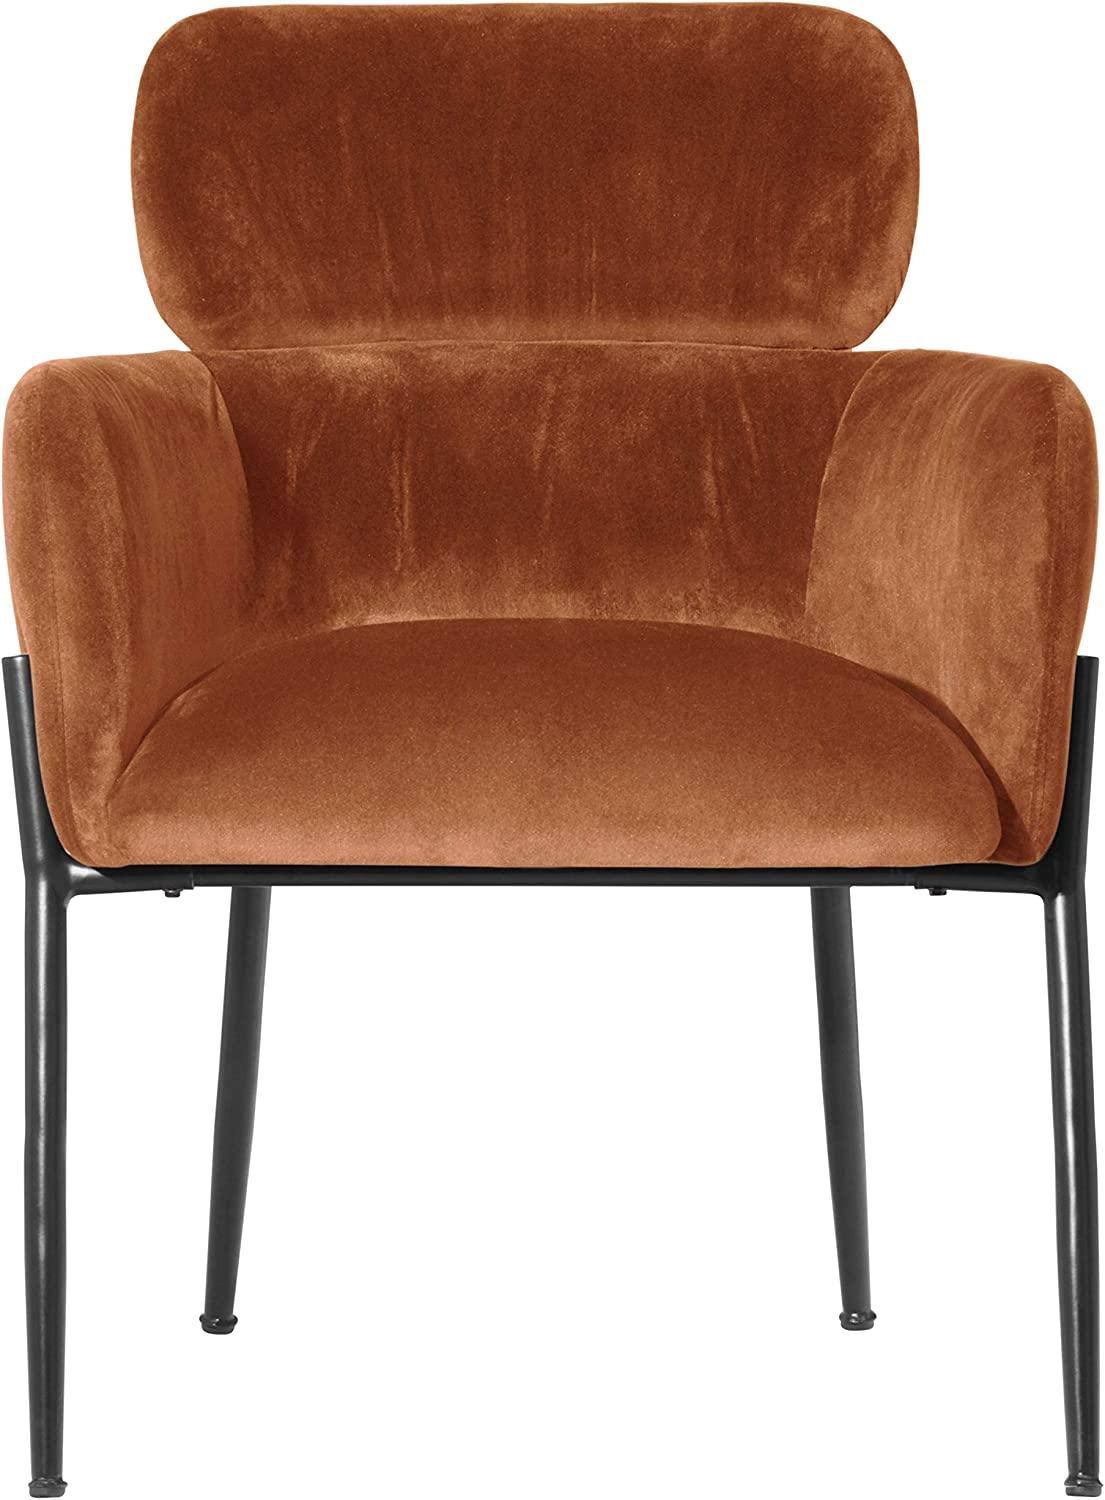 Rivet Modern Dining Room Chair 32 Inch Height, Orange